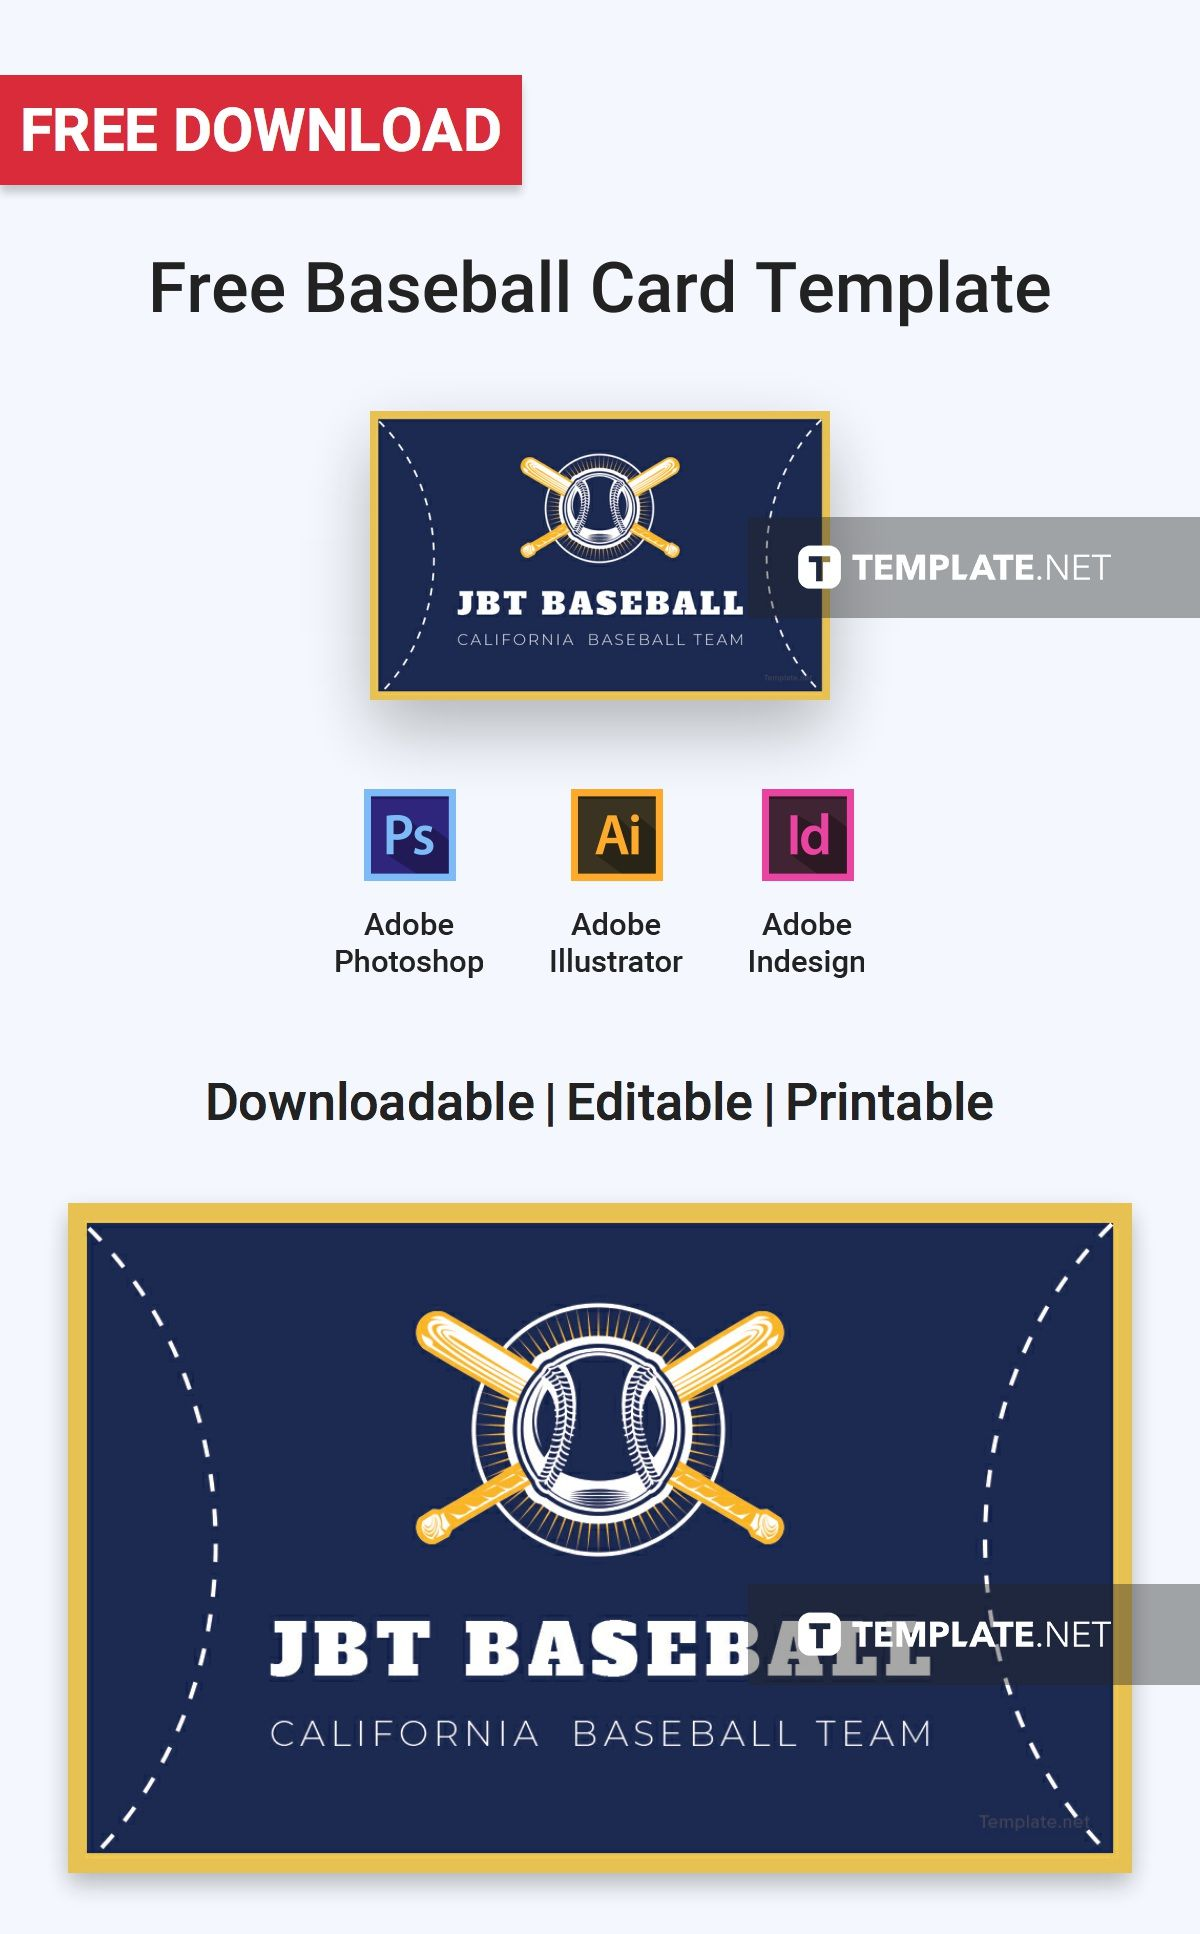 Free Baseball Card Free Card Templates Pinterest Card